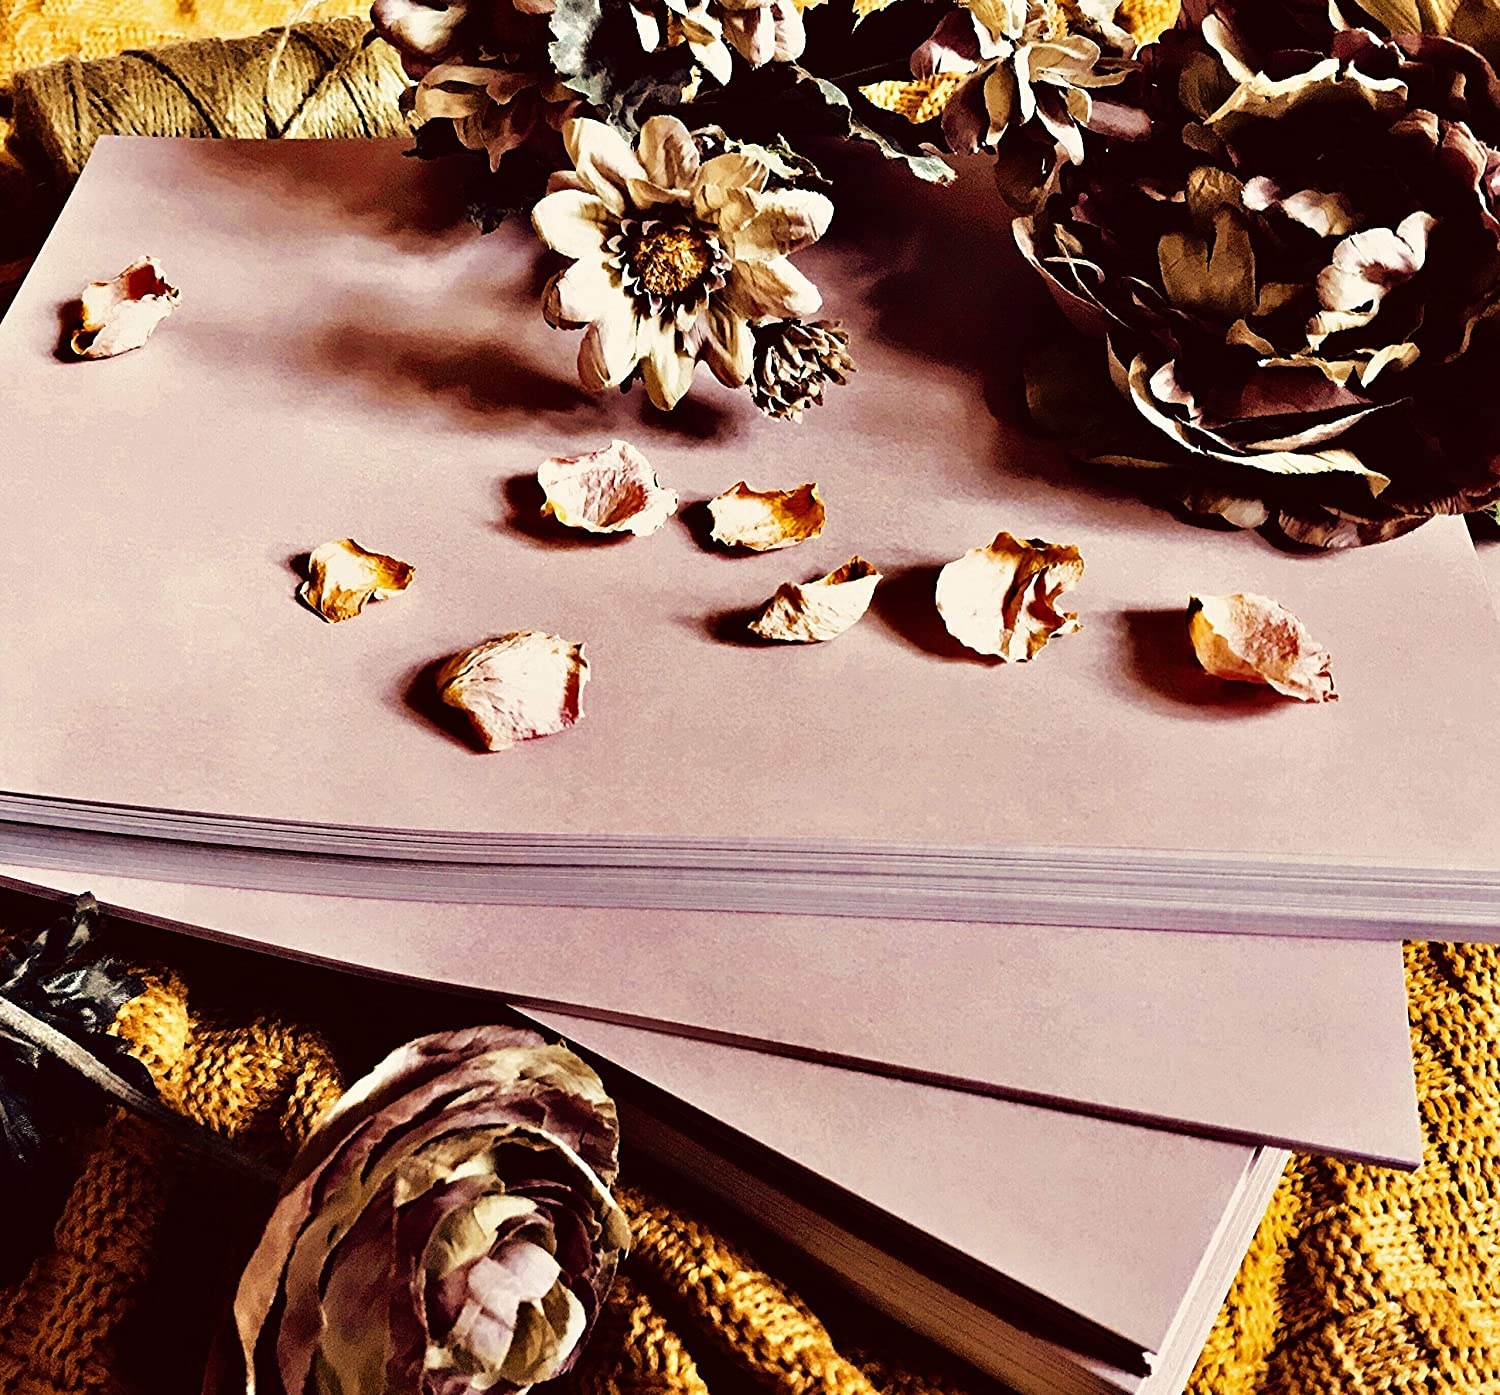 120gsm Pack of 100 Sheets Mauve Dusty Rose Colored Paper Subtle Old Stain Grunge Effect for Craft Certificates Letterhead Invoices A4-11.69x8.27 inches // 29.7x21 cm